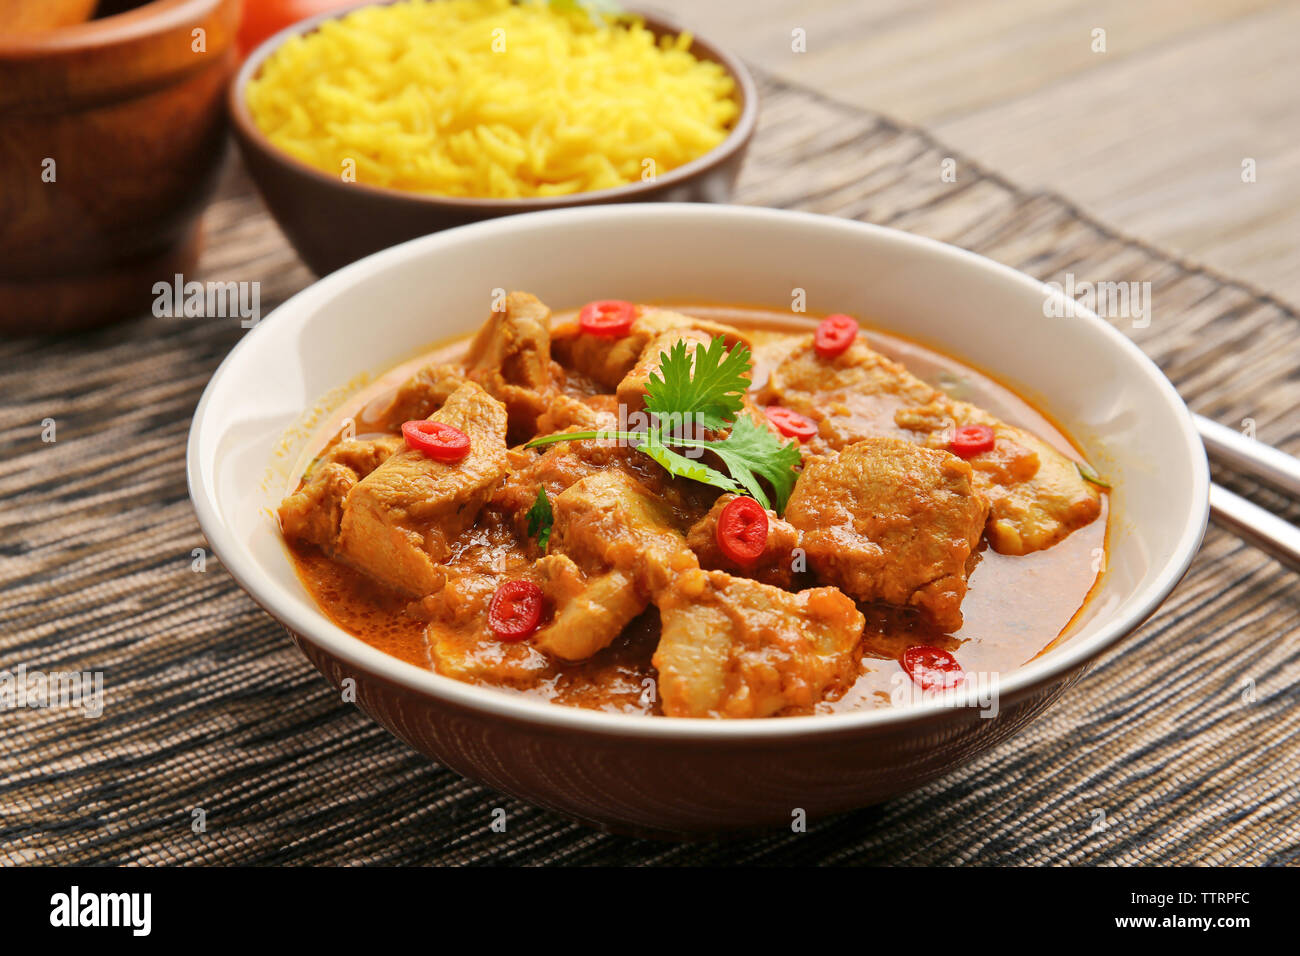 Tasty dinner with chicken curry in plate on table - Stock Image